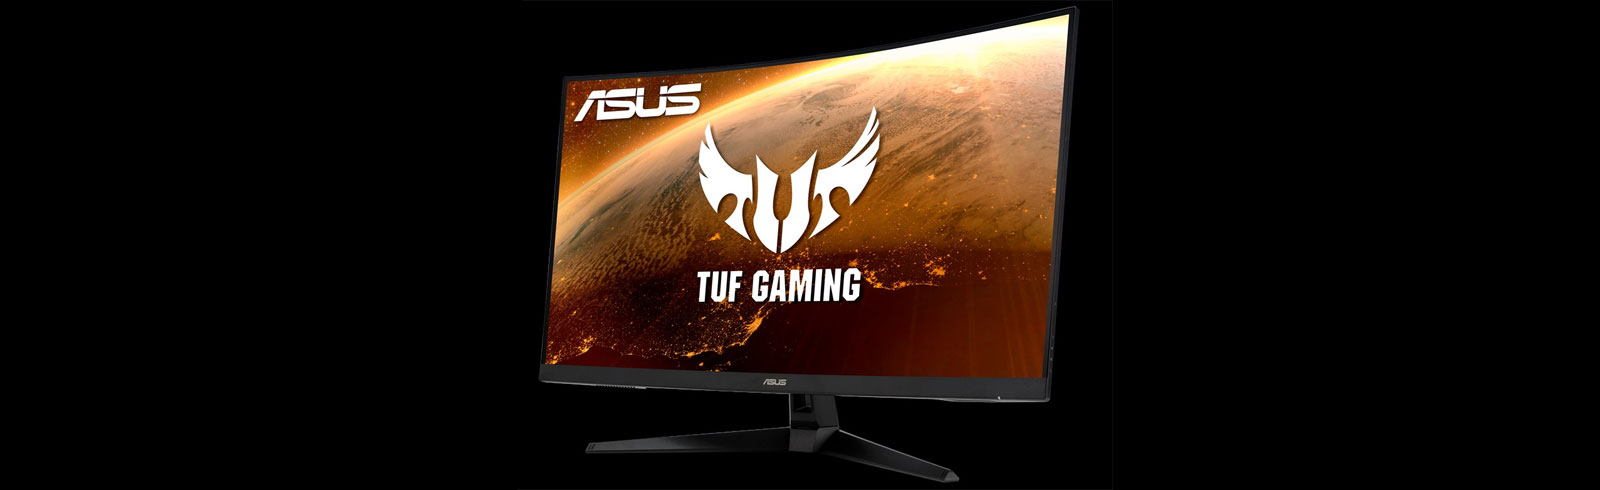 """Asus TUF Gaming VG328H1B is announced with a 32"""" curved VA panel, 165Hz"""